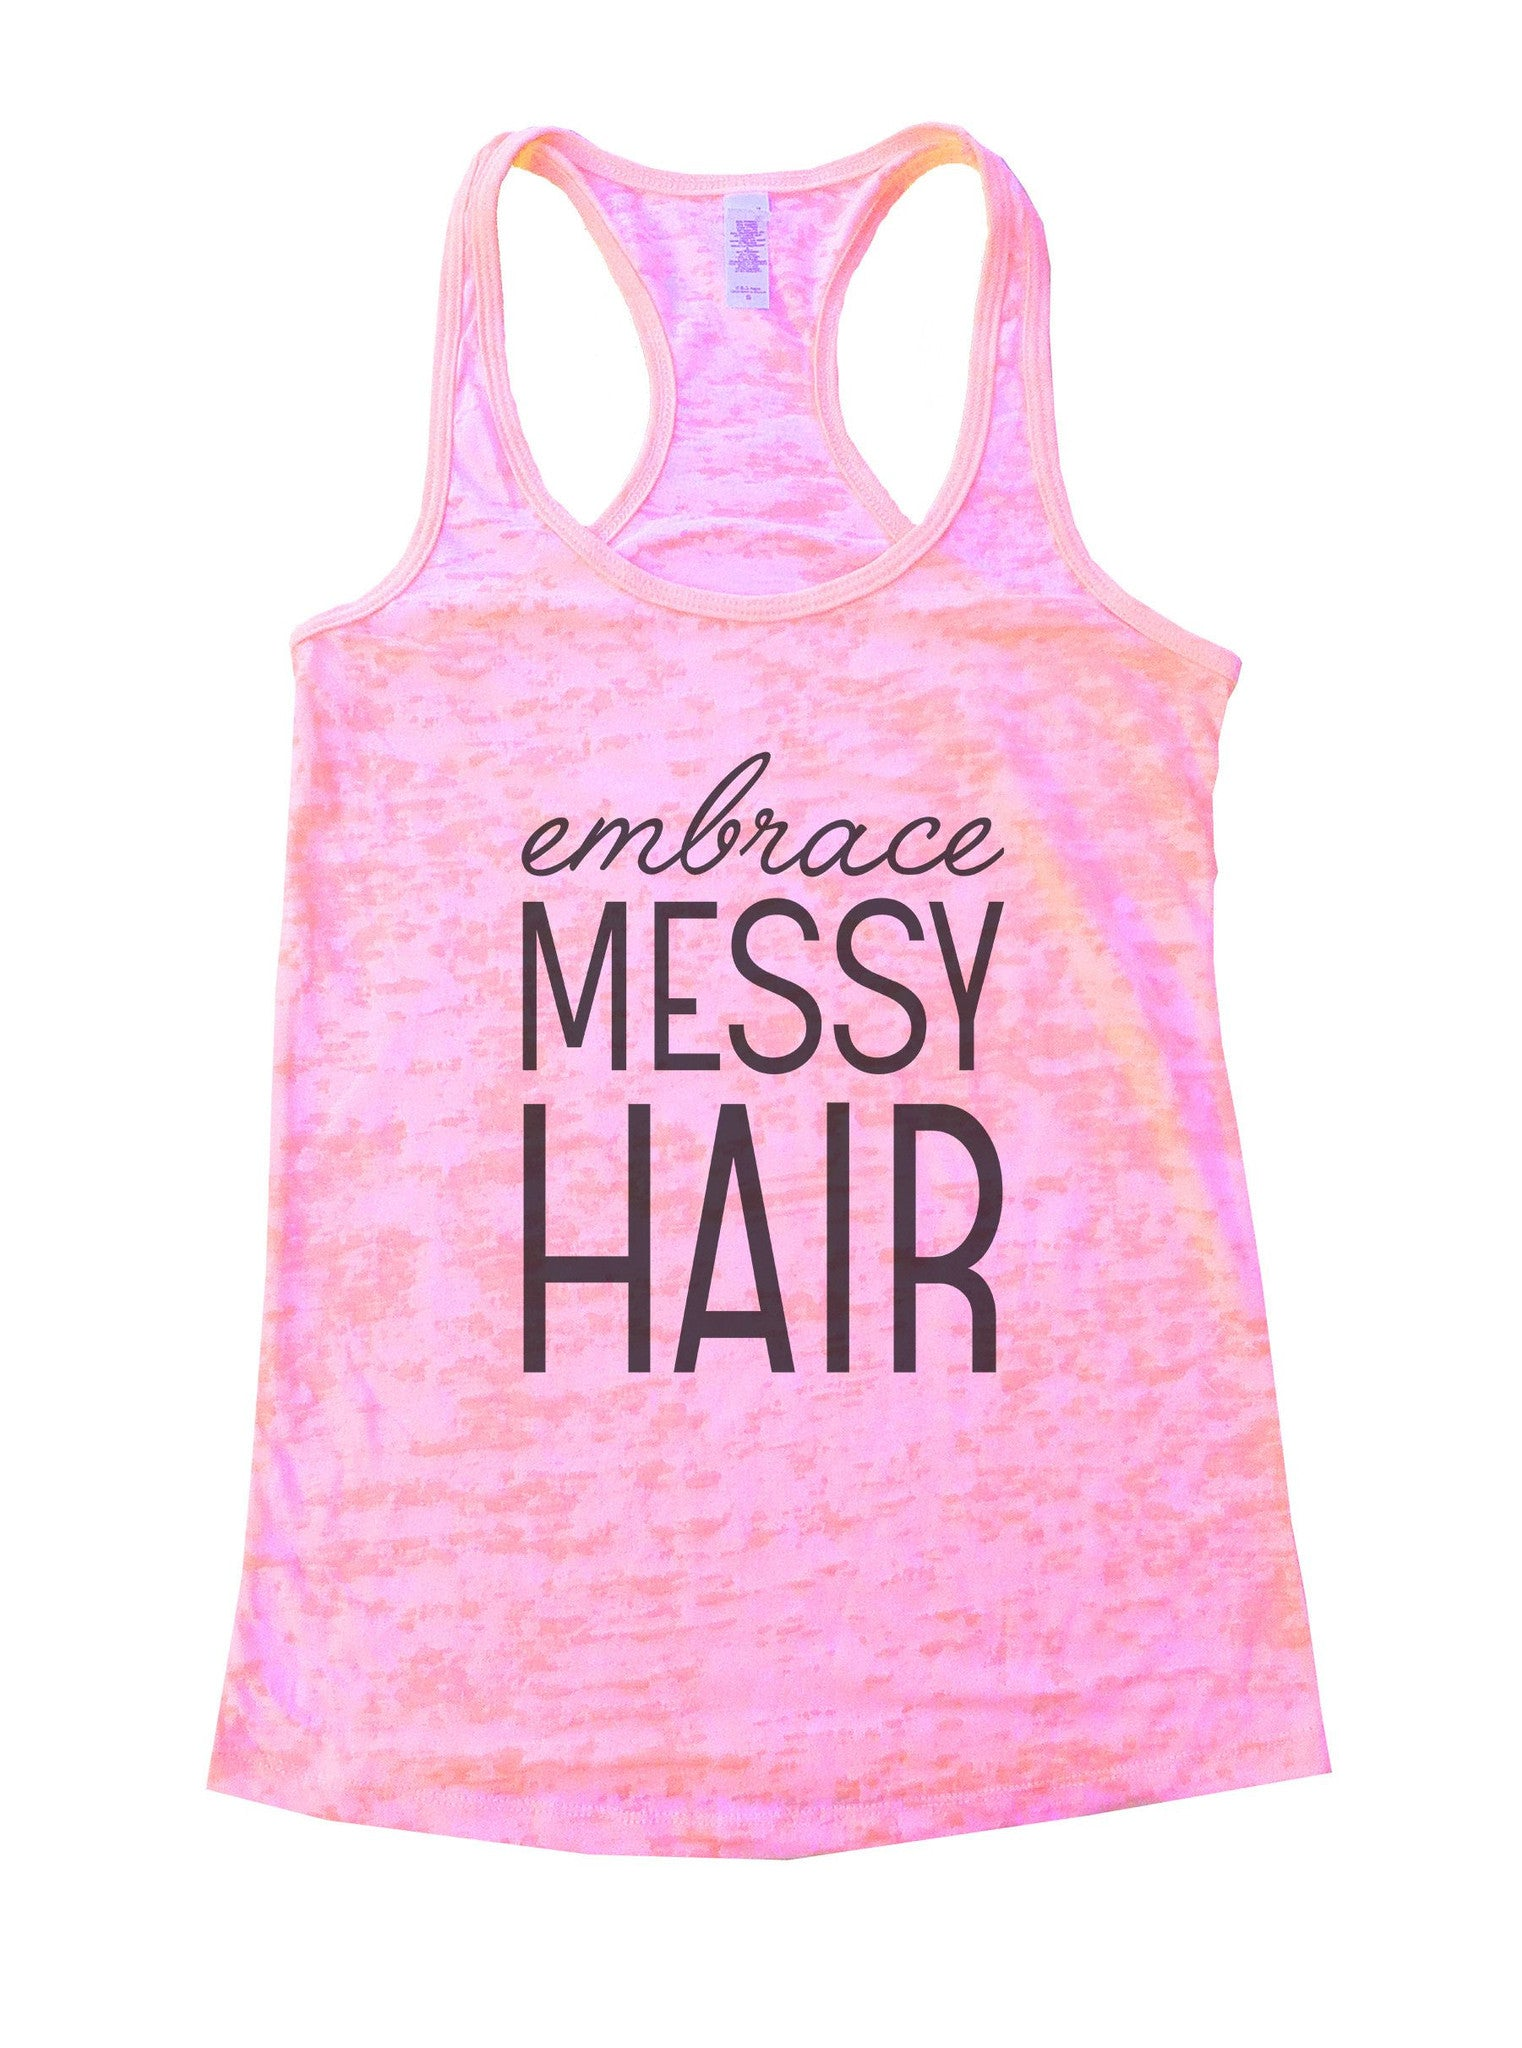 Embrace Messy Hair Burnout Tank Top By BurnoutTankTops.com - 940 - Funny Shirts Tank Tops Burnouts and Triblends  - 2